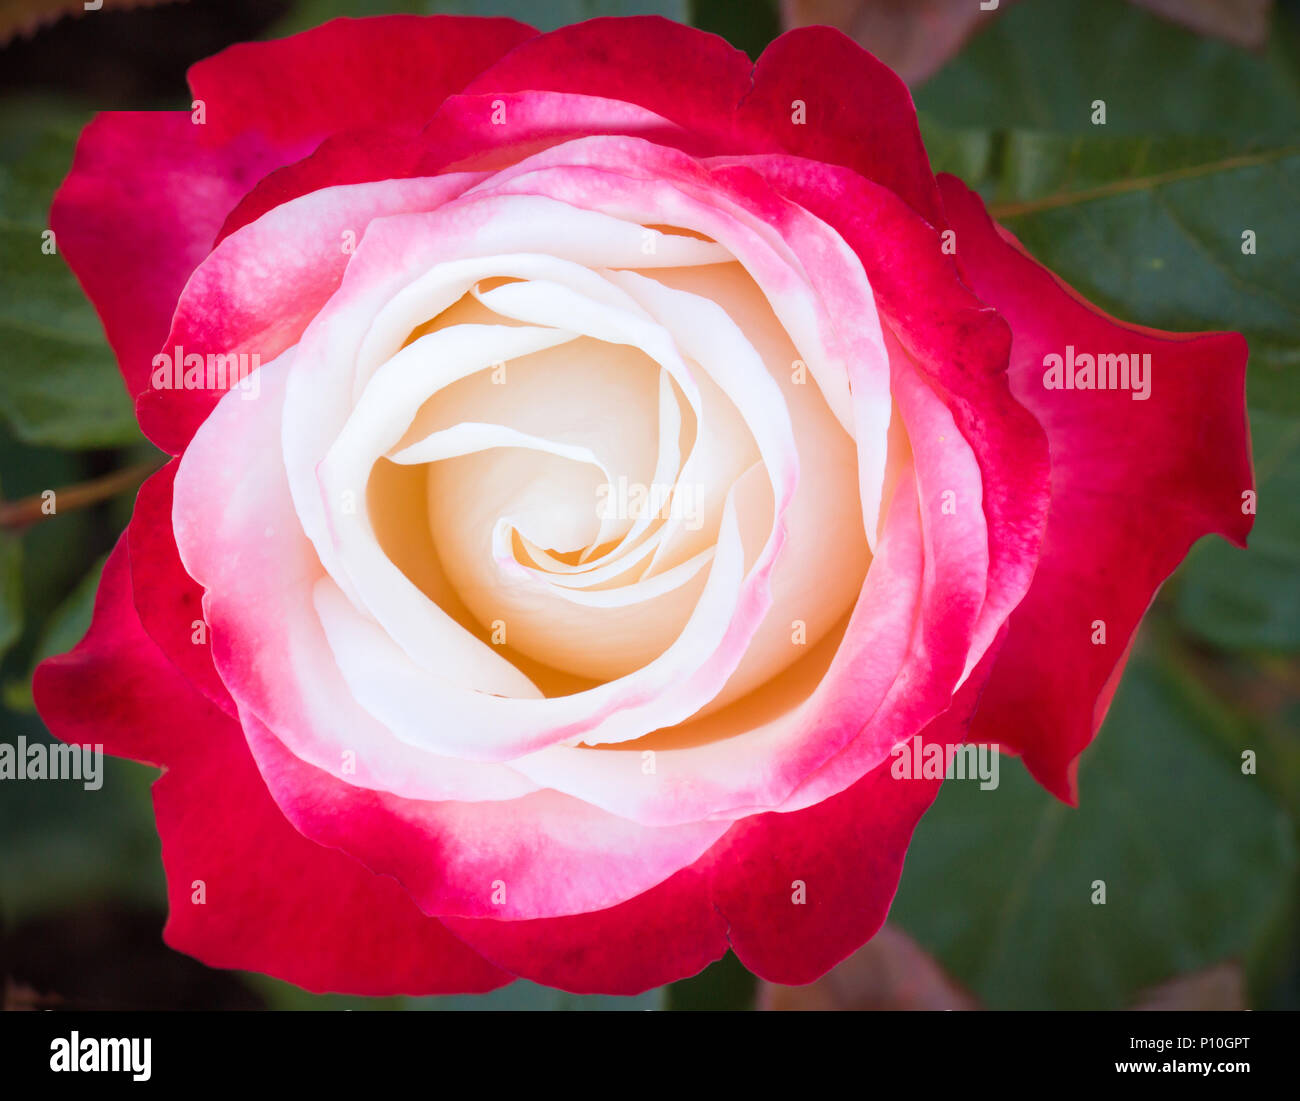 Beautiful delicate of roses flower, rose garden blooming in